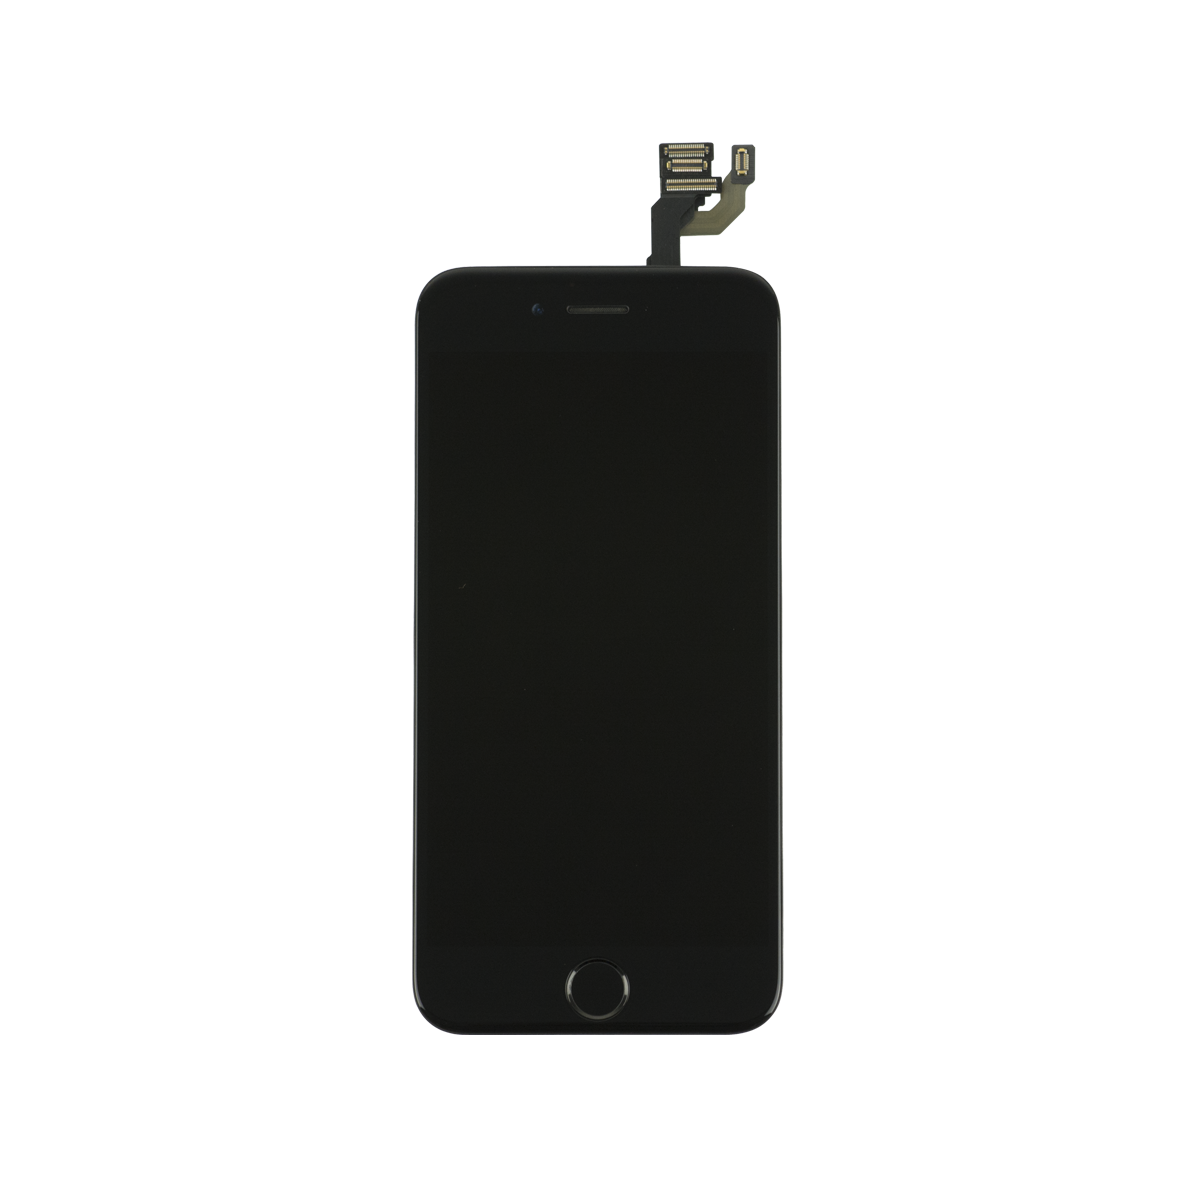 For Apple iPhone 6 6G - LCD Digitizer Touch Screen Complete Assembly - With Spare Parts - Black - OEM